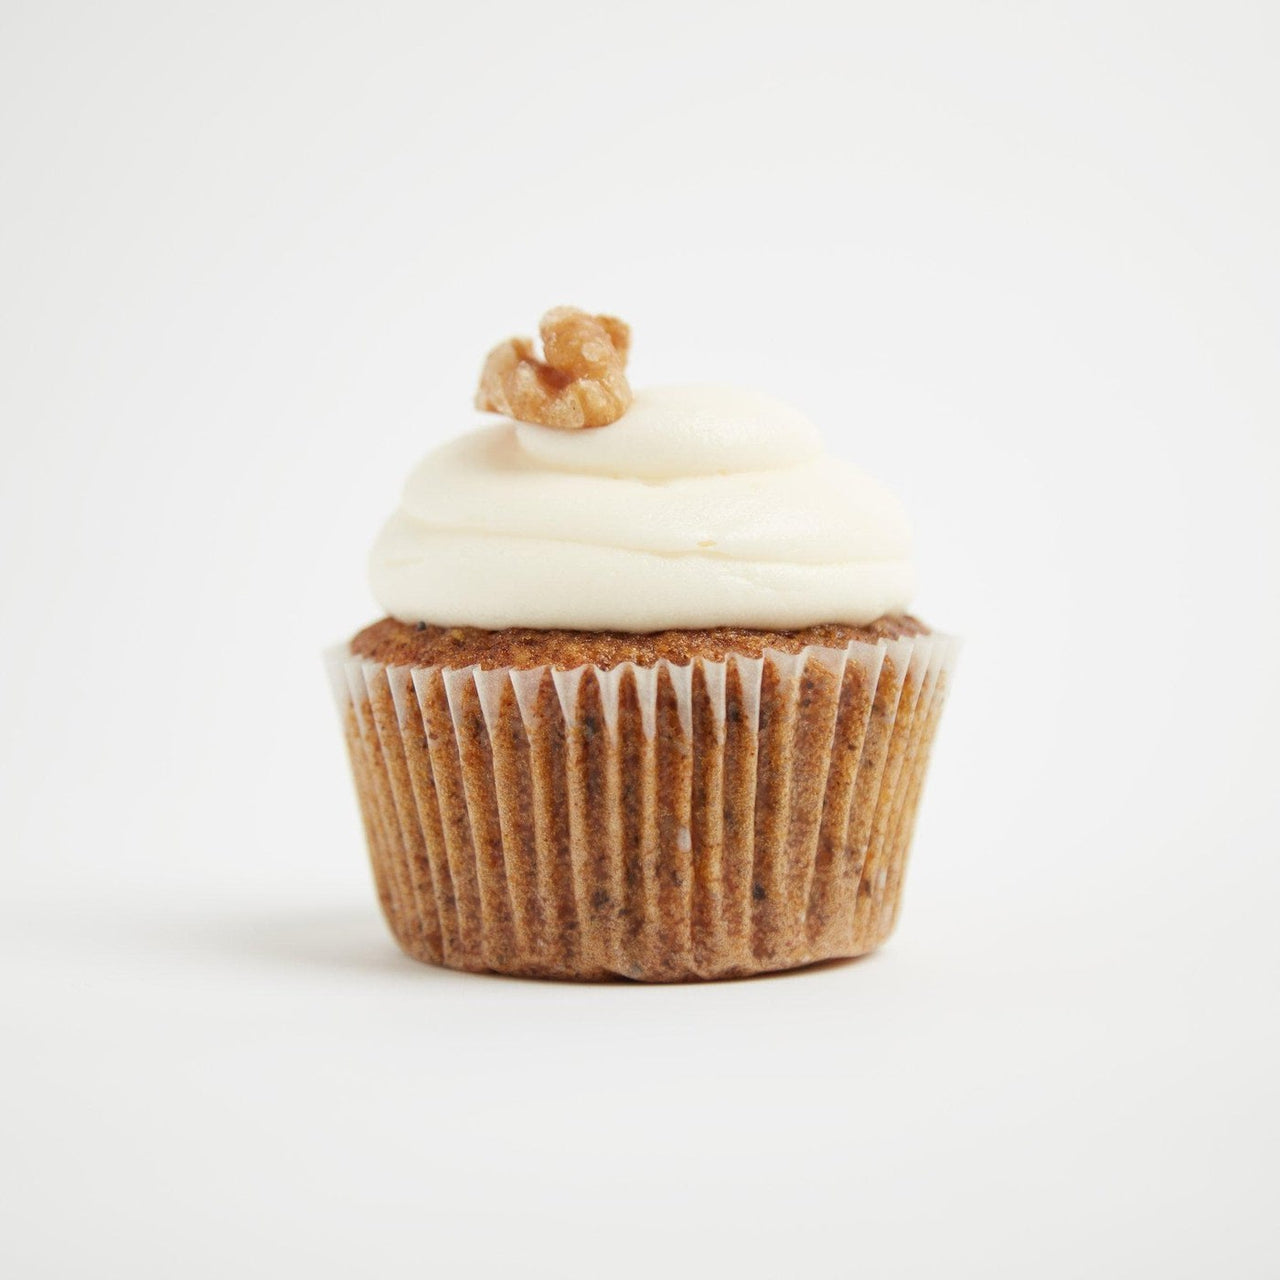 Carrot Cupcakes by Crumbs & Doilies